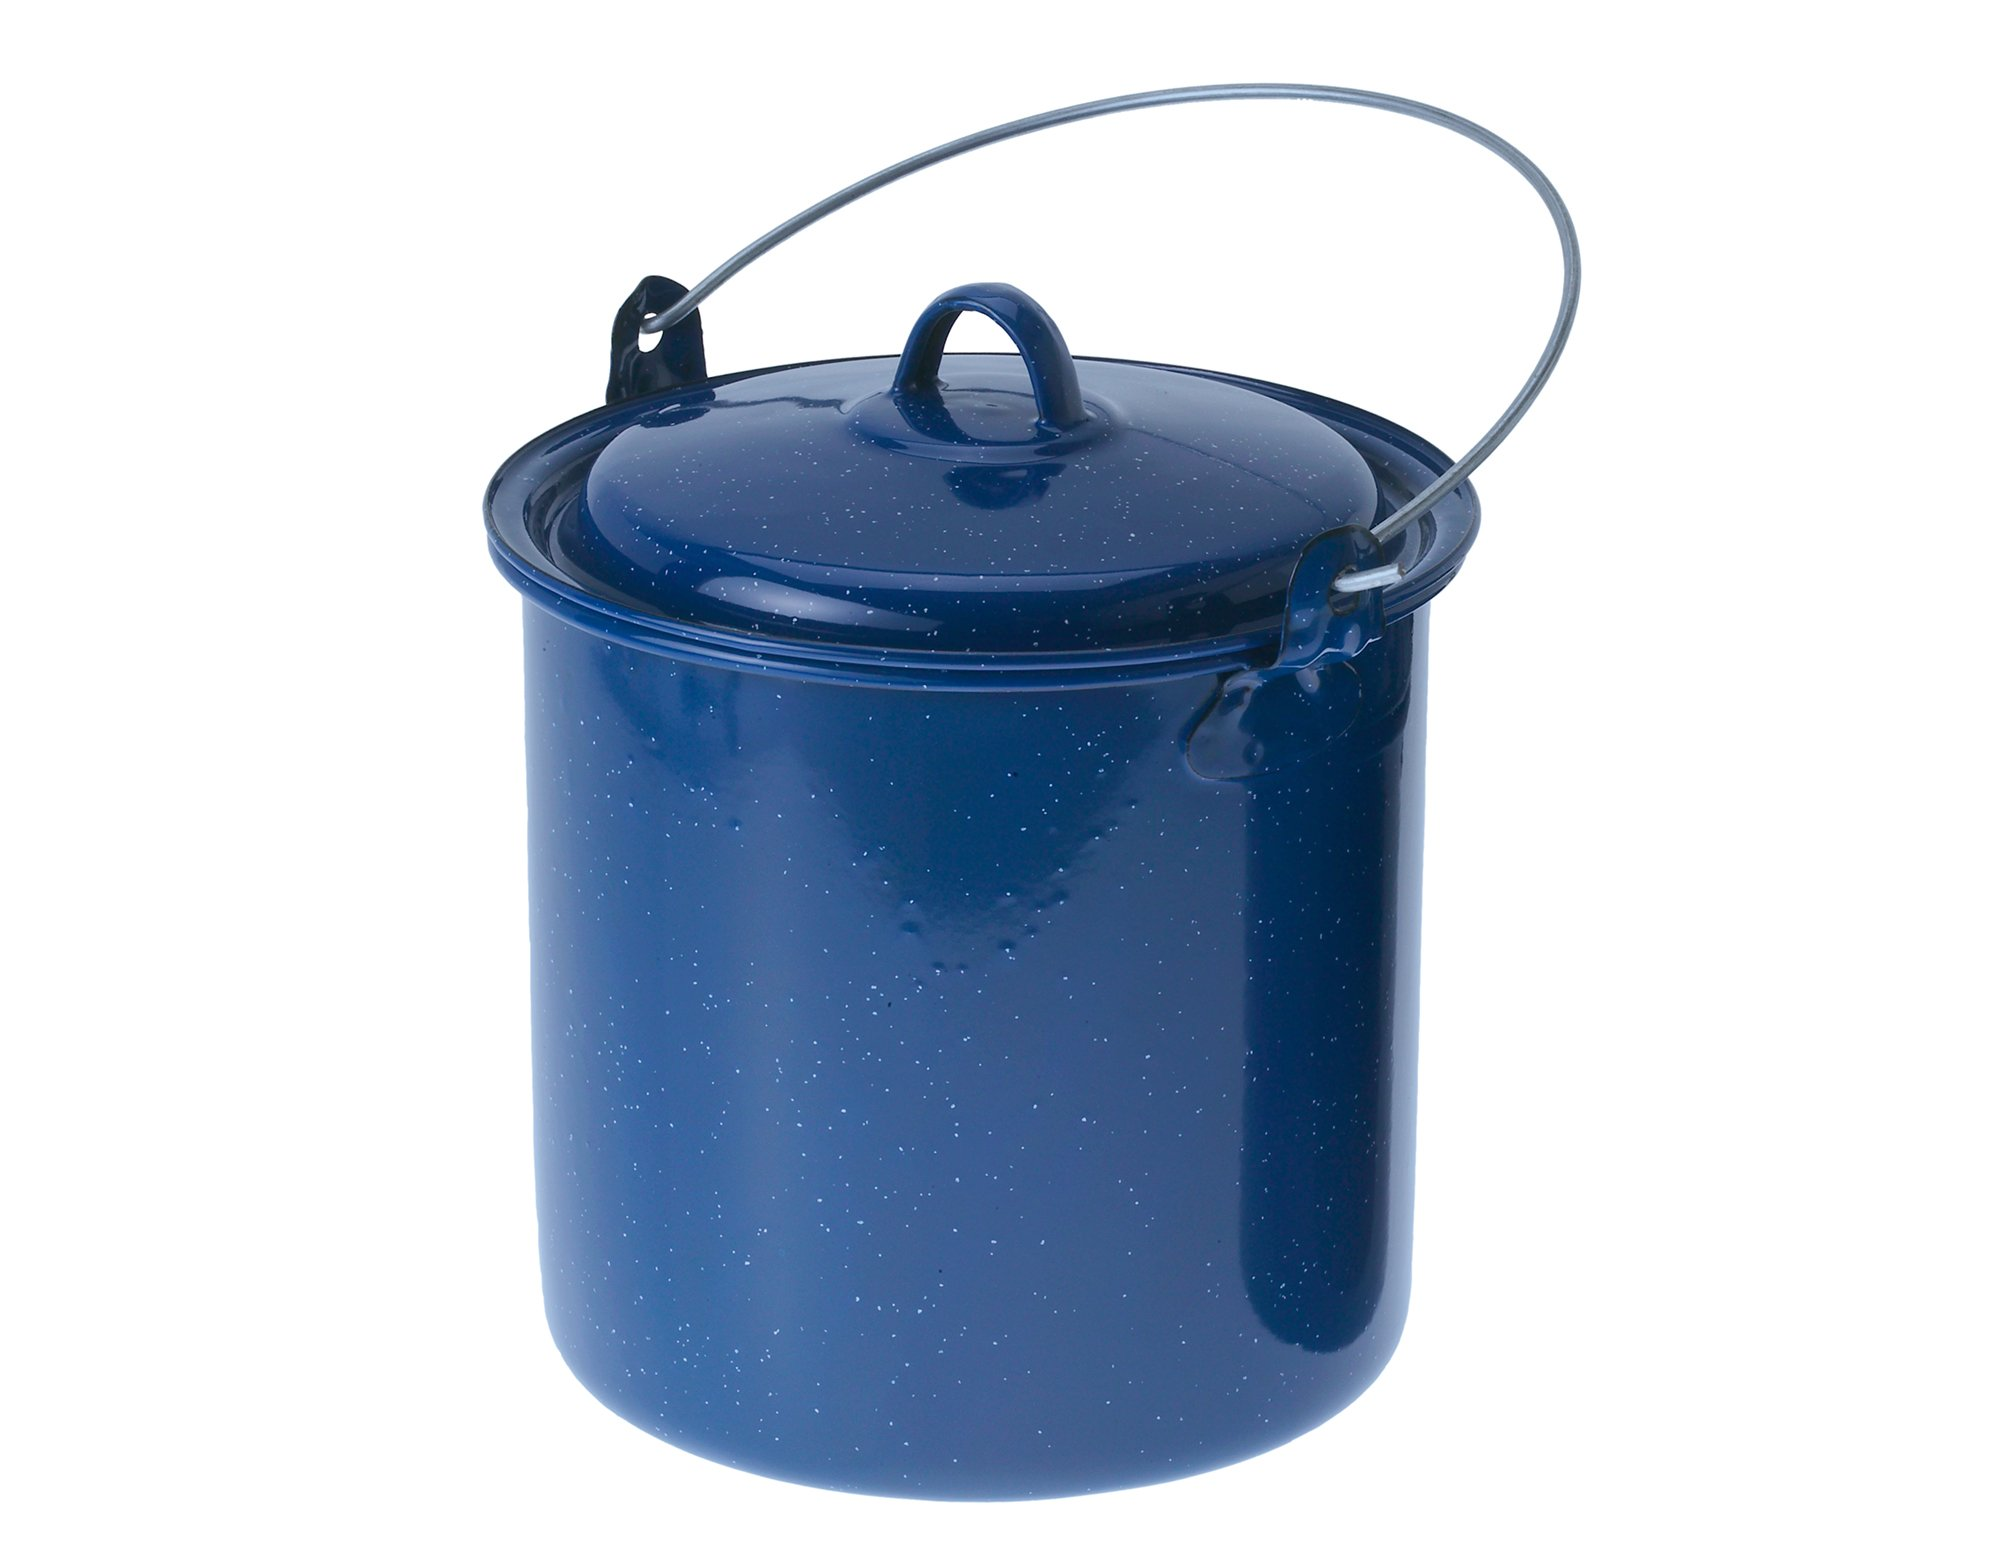 GSI Outdoors Straight Pot with Lid, Blue, 3.5-Quart